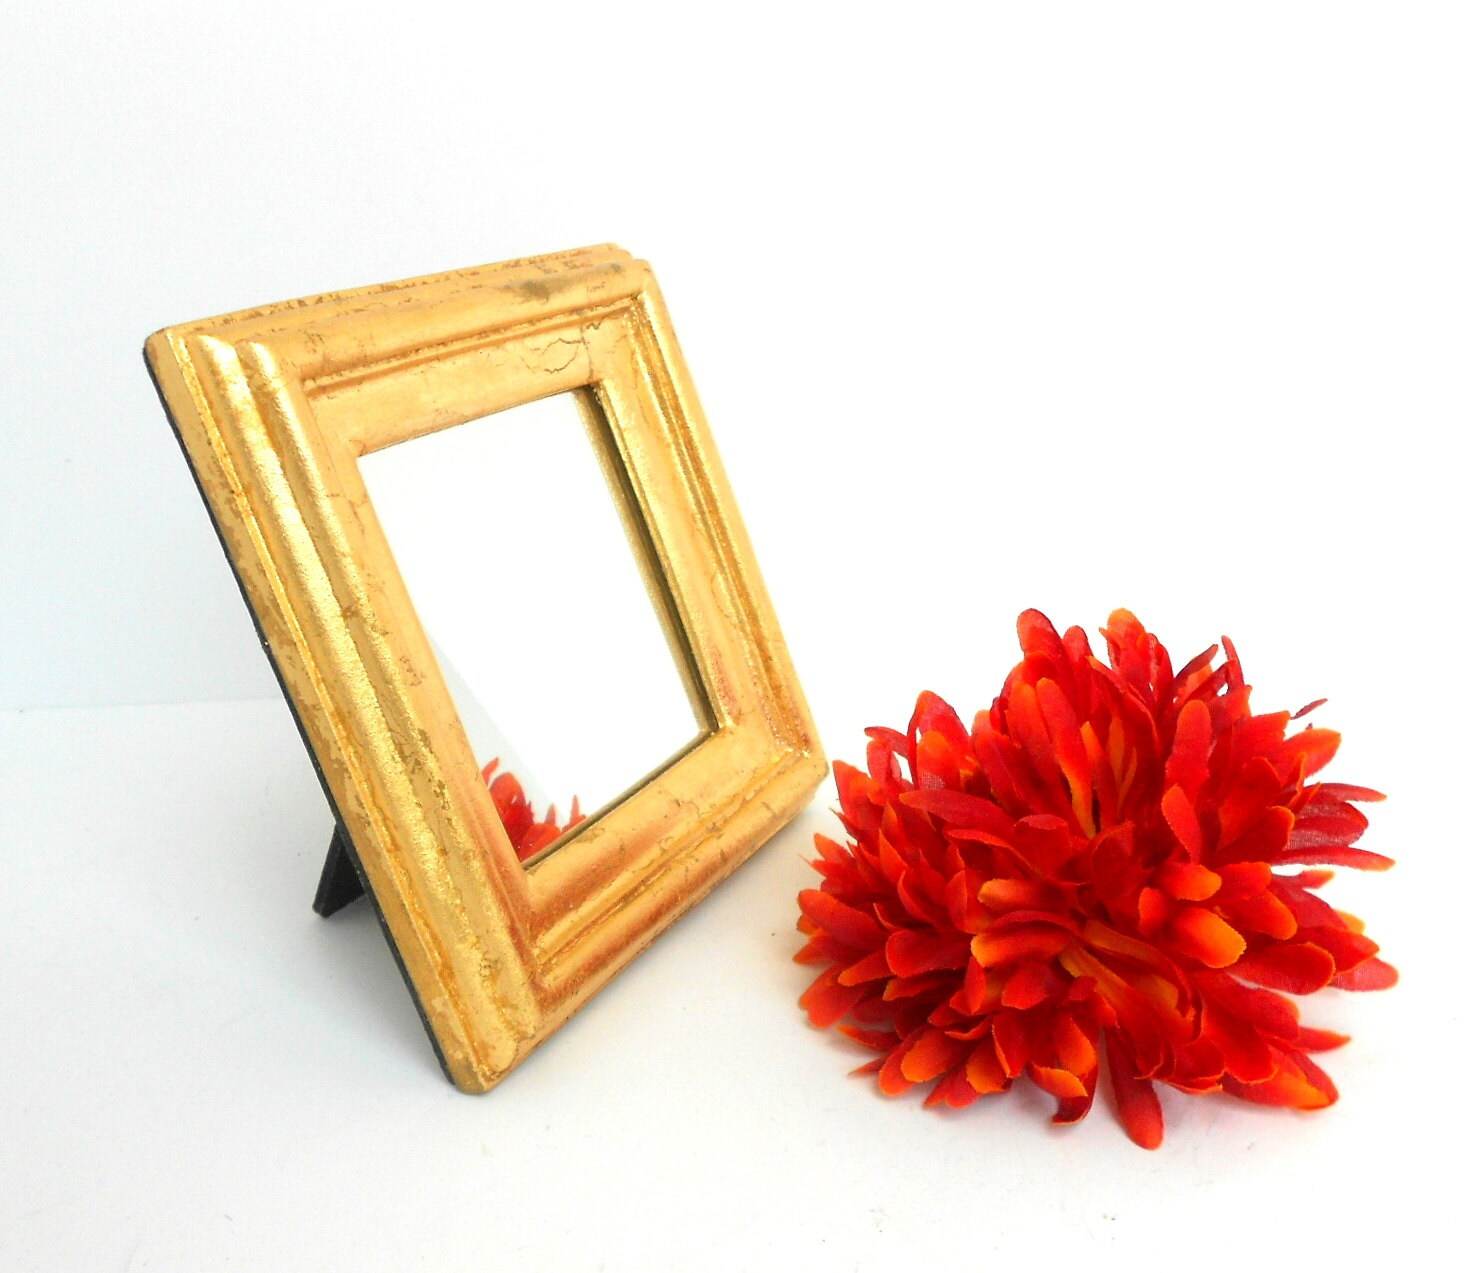 Mirror small wall mirror decorative mirror gold for Small decorative mirrors